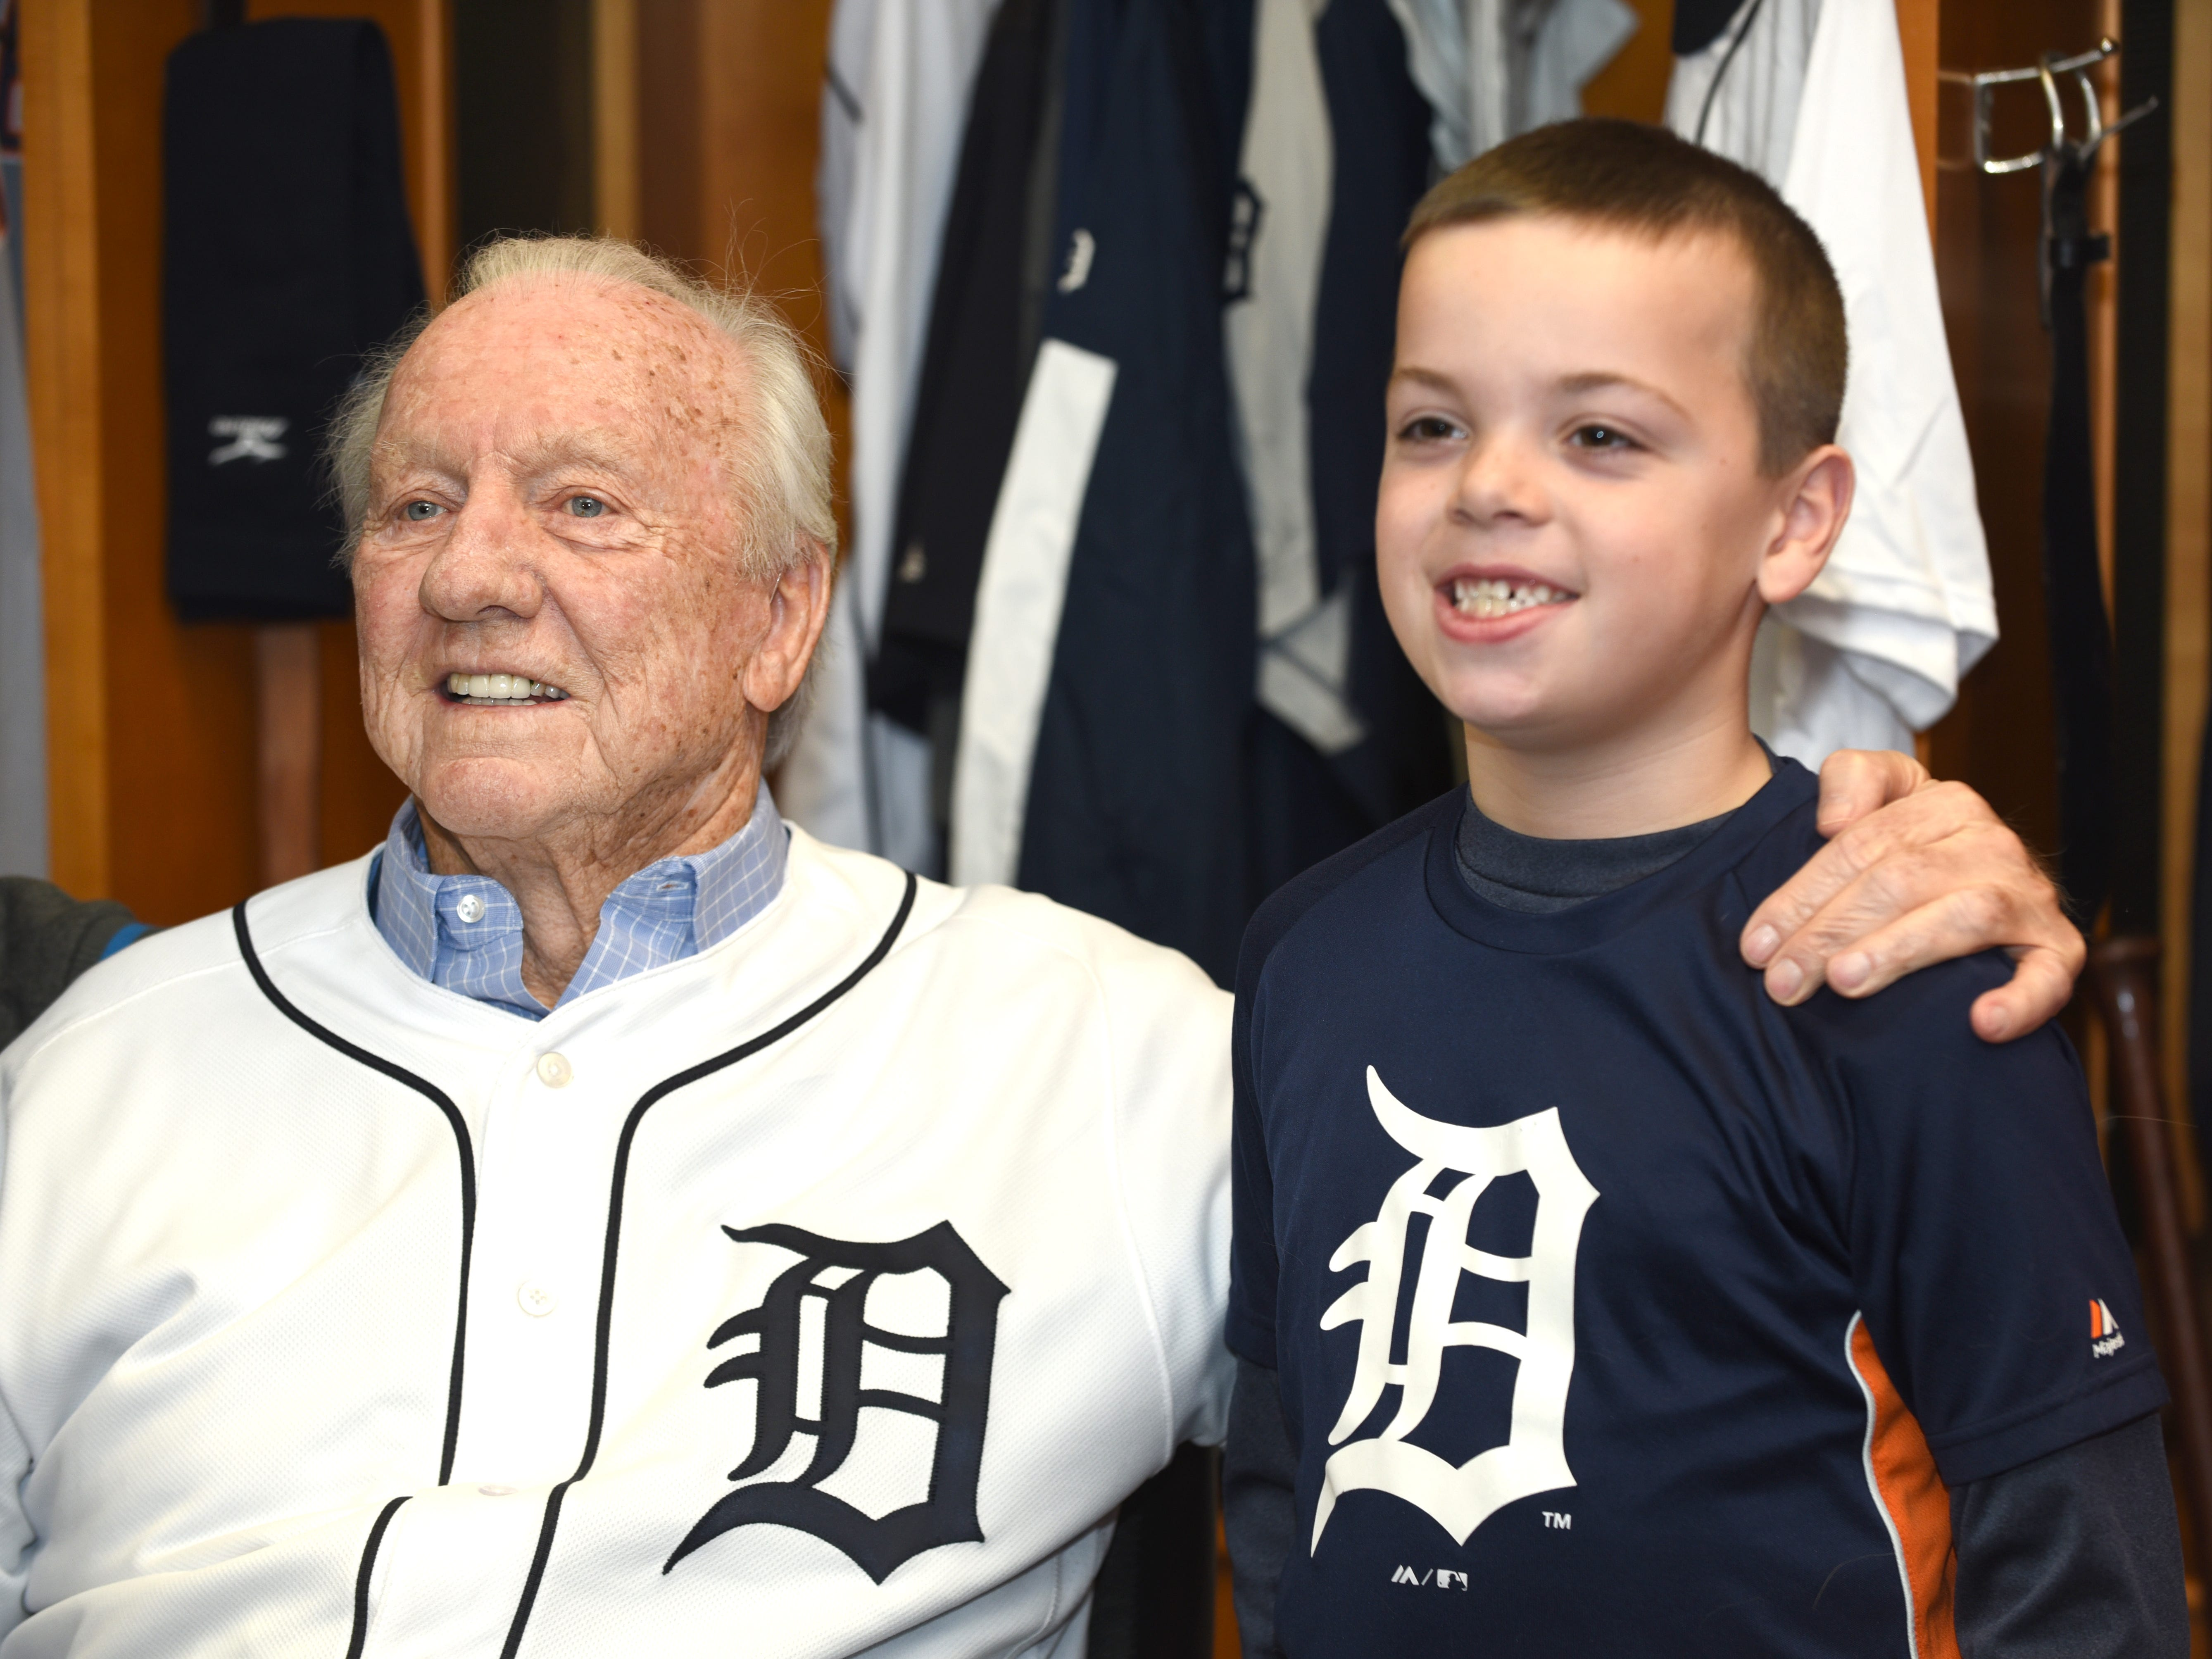 Detroit Tigers Al Kaline takes a picture with Nick Giorgi of Troy during TigerFest 2019 at Comerica Park.